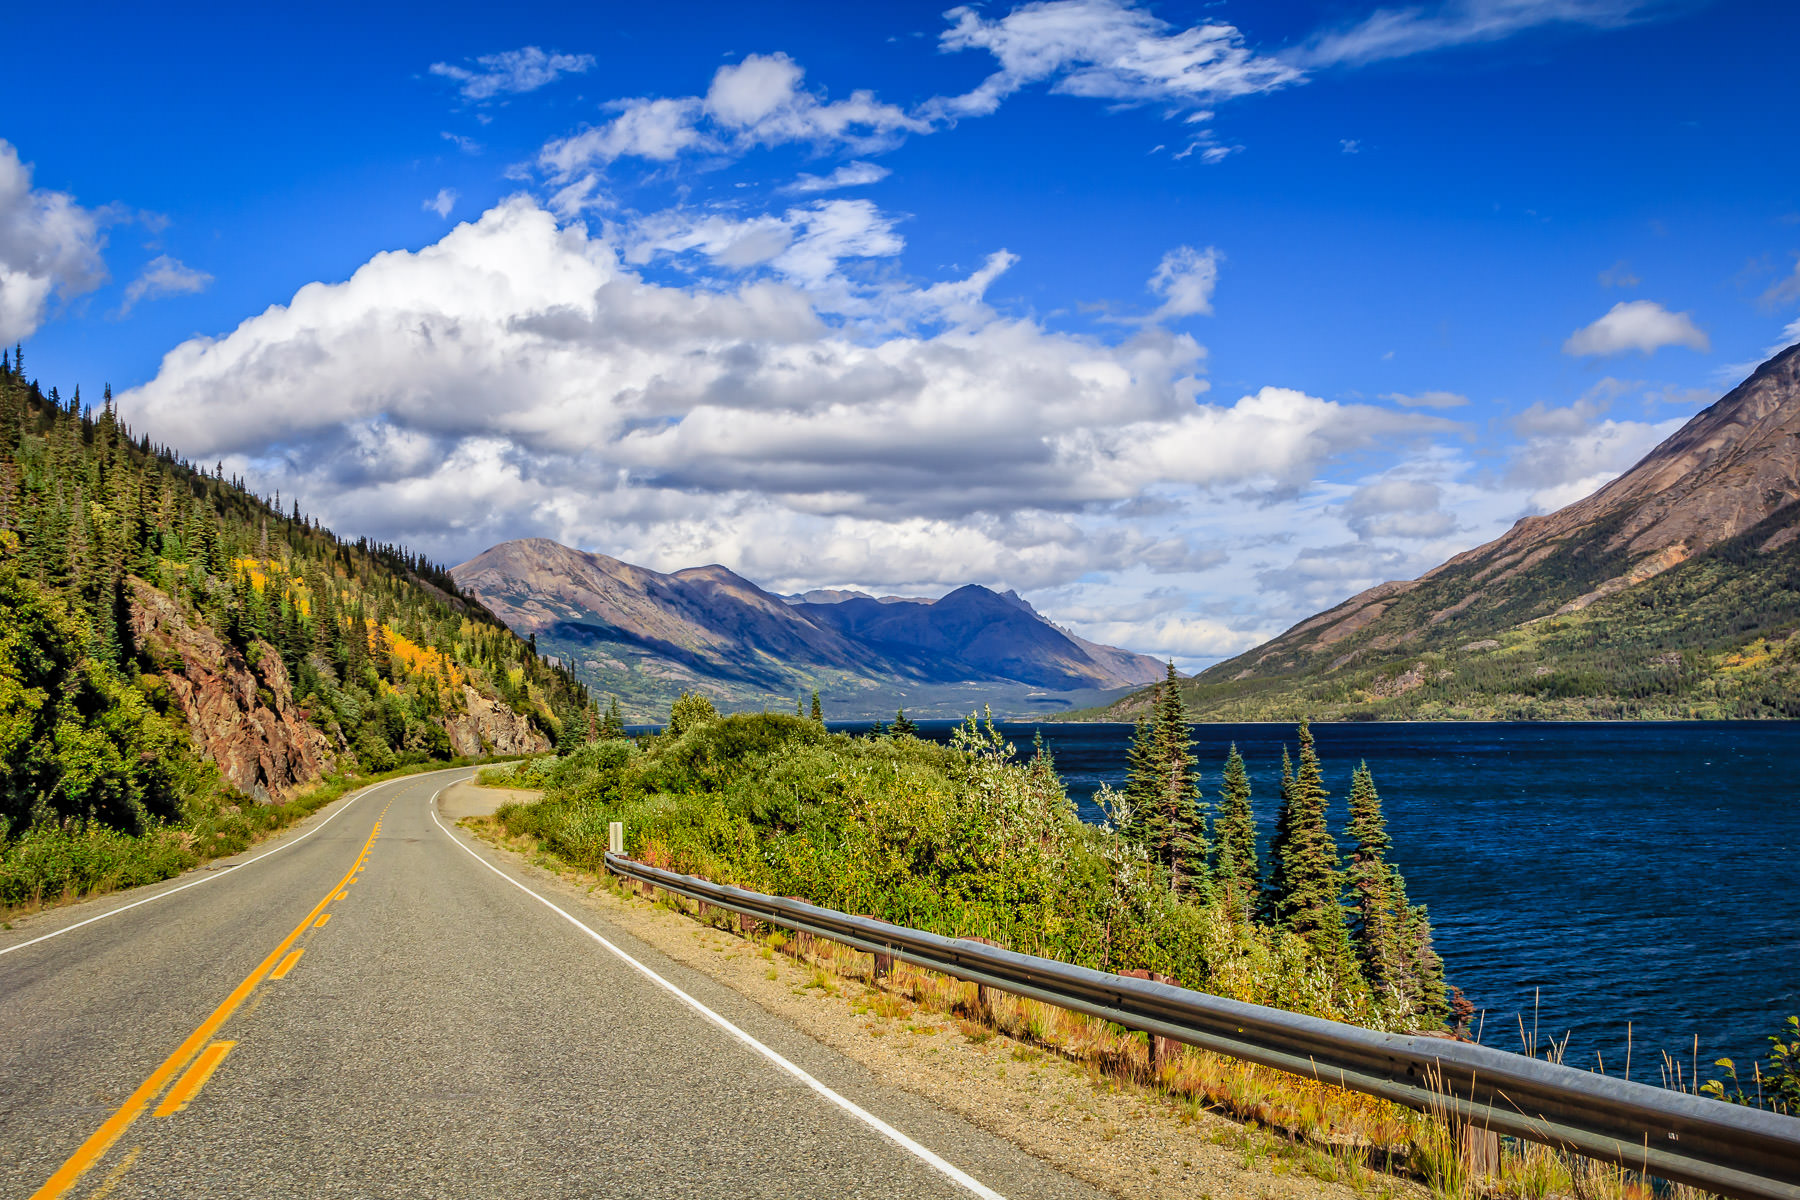 The Klondike Highway snakes along the edge of Tutshi Lake in British Columbia's Stikine Region.